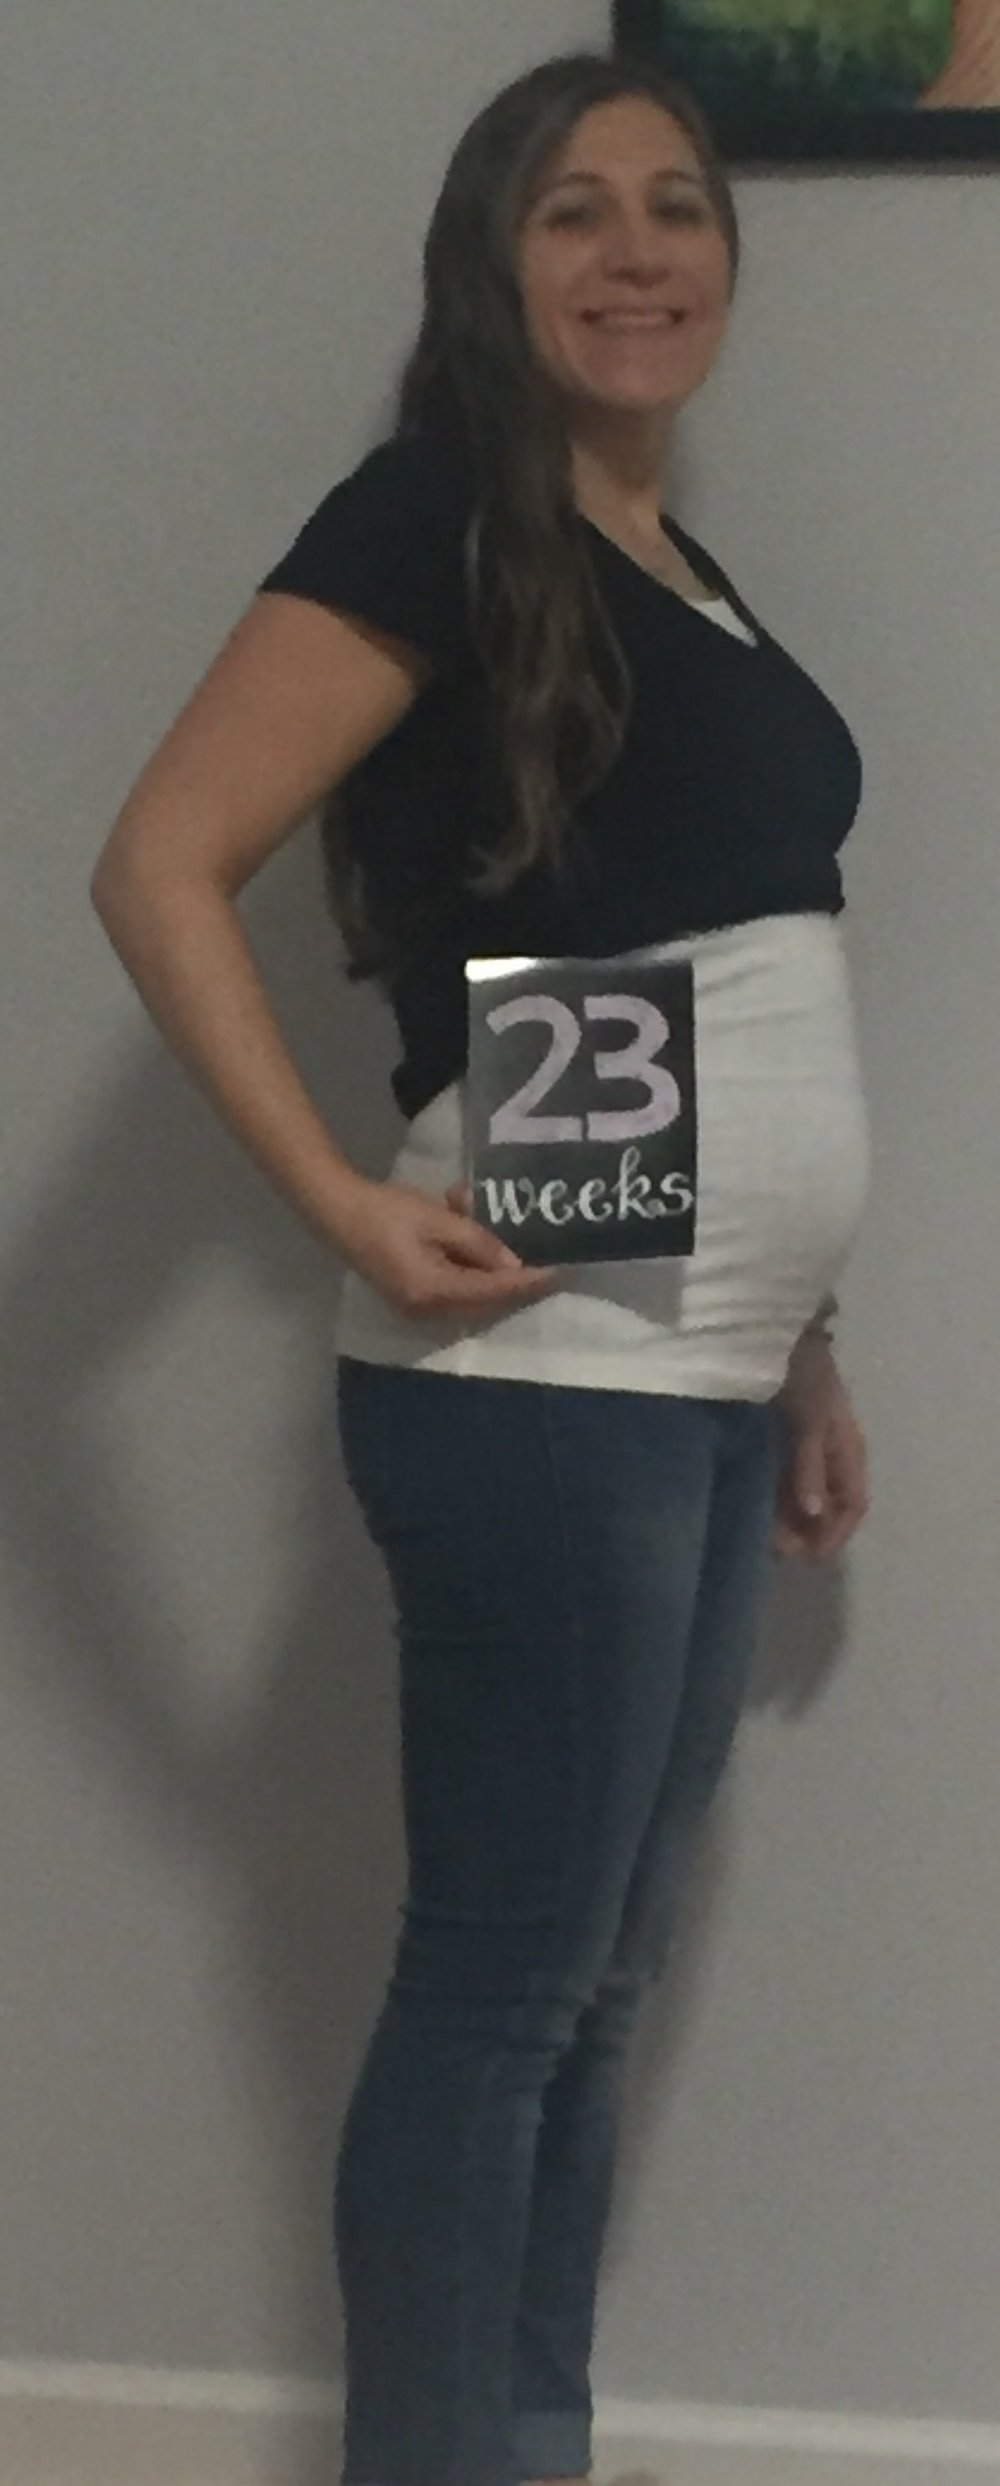 Baby on board - Jenn is 23 weeks and counting!